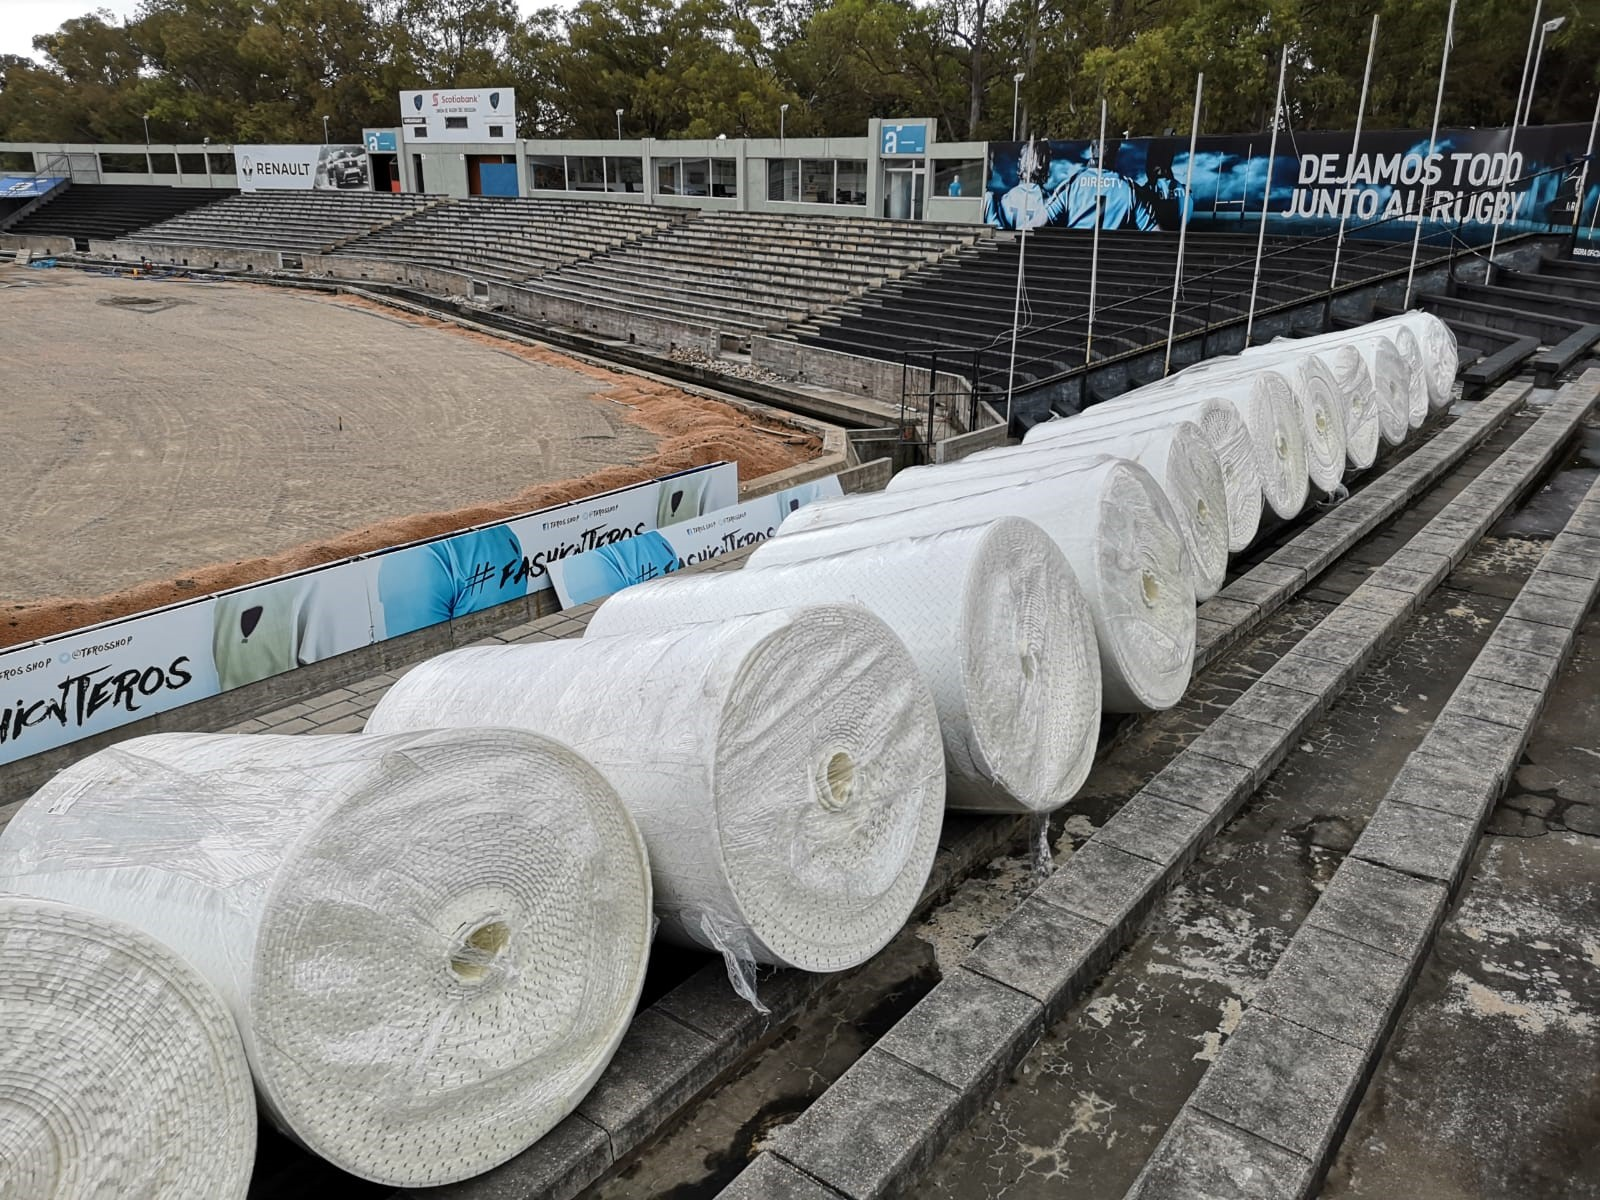 ProGame Shockpads used in Estadio Charrua for the Women's U17 FIFA World Cup.